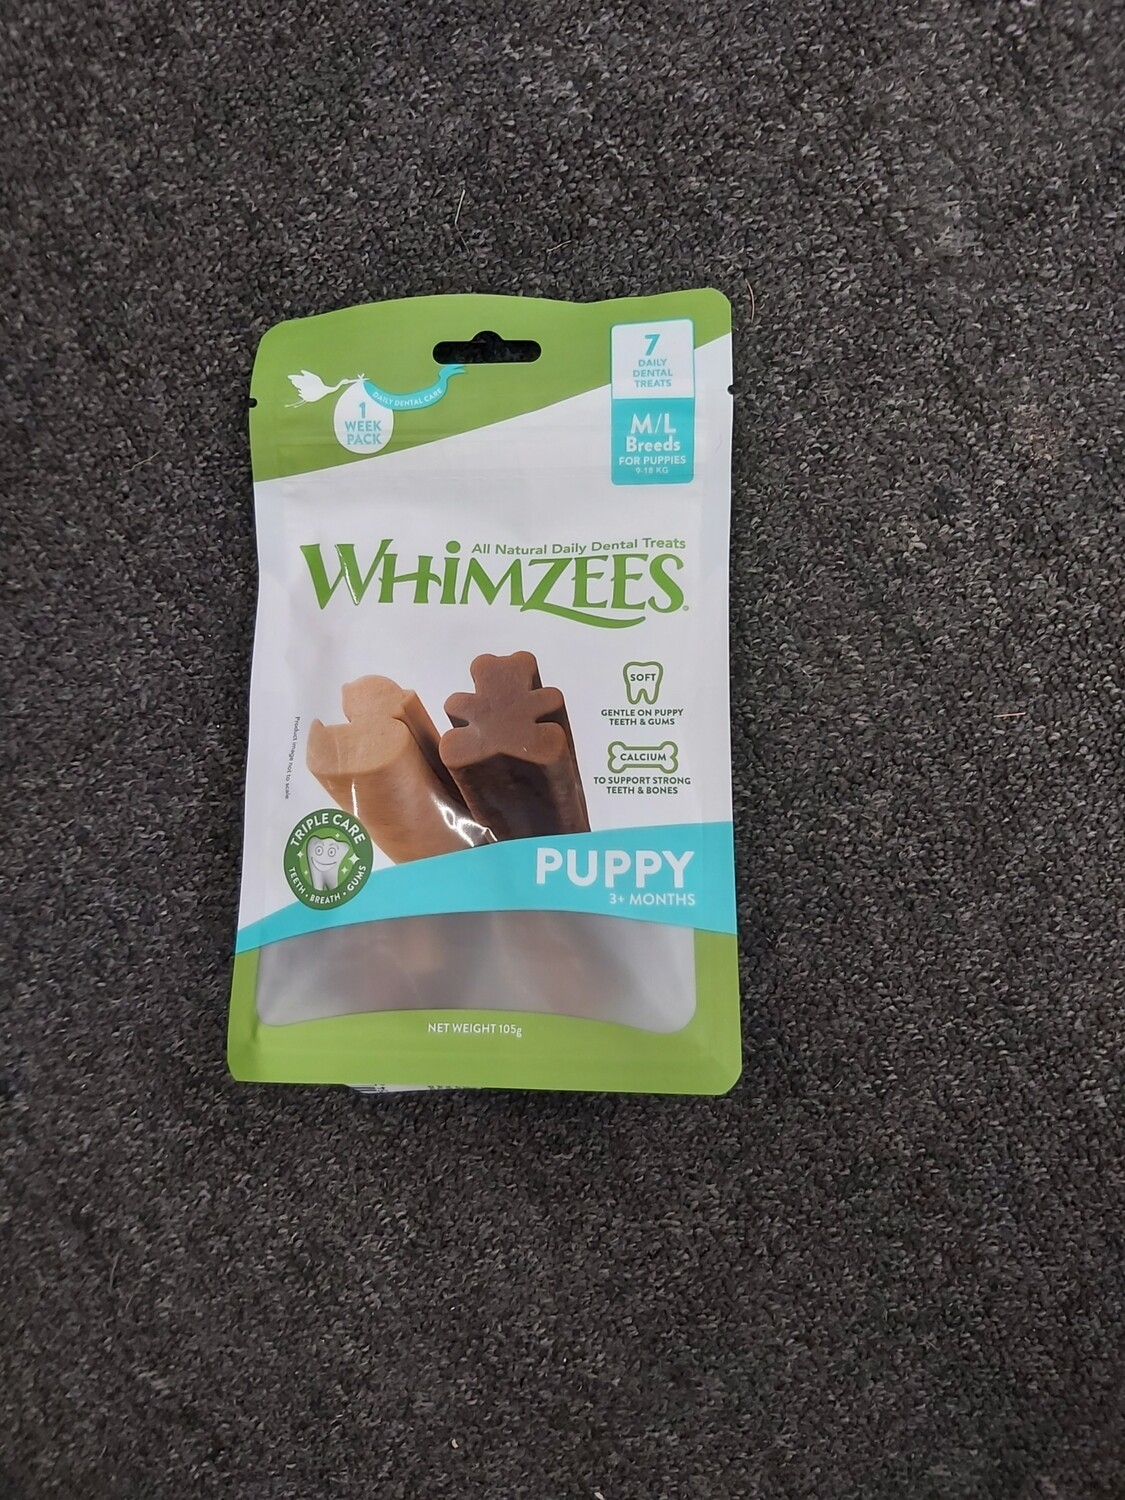 Whimzees Puppy M/L  7 pack